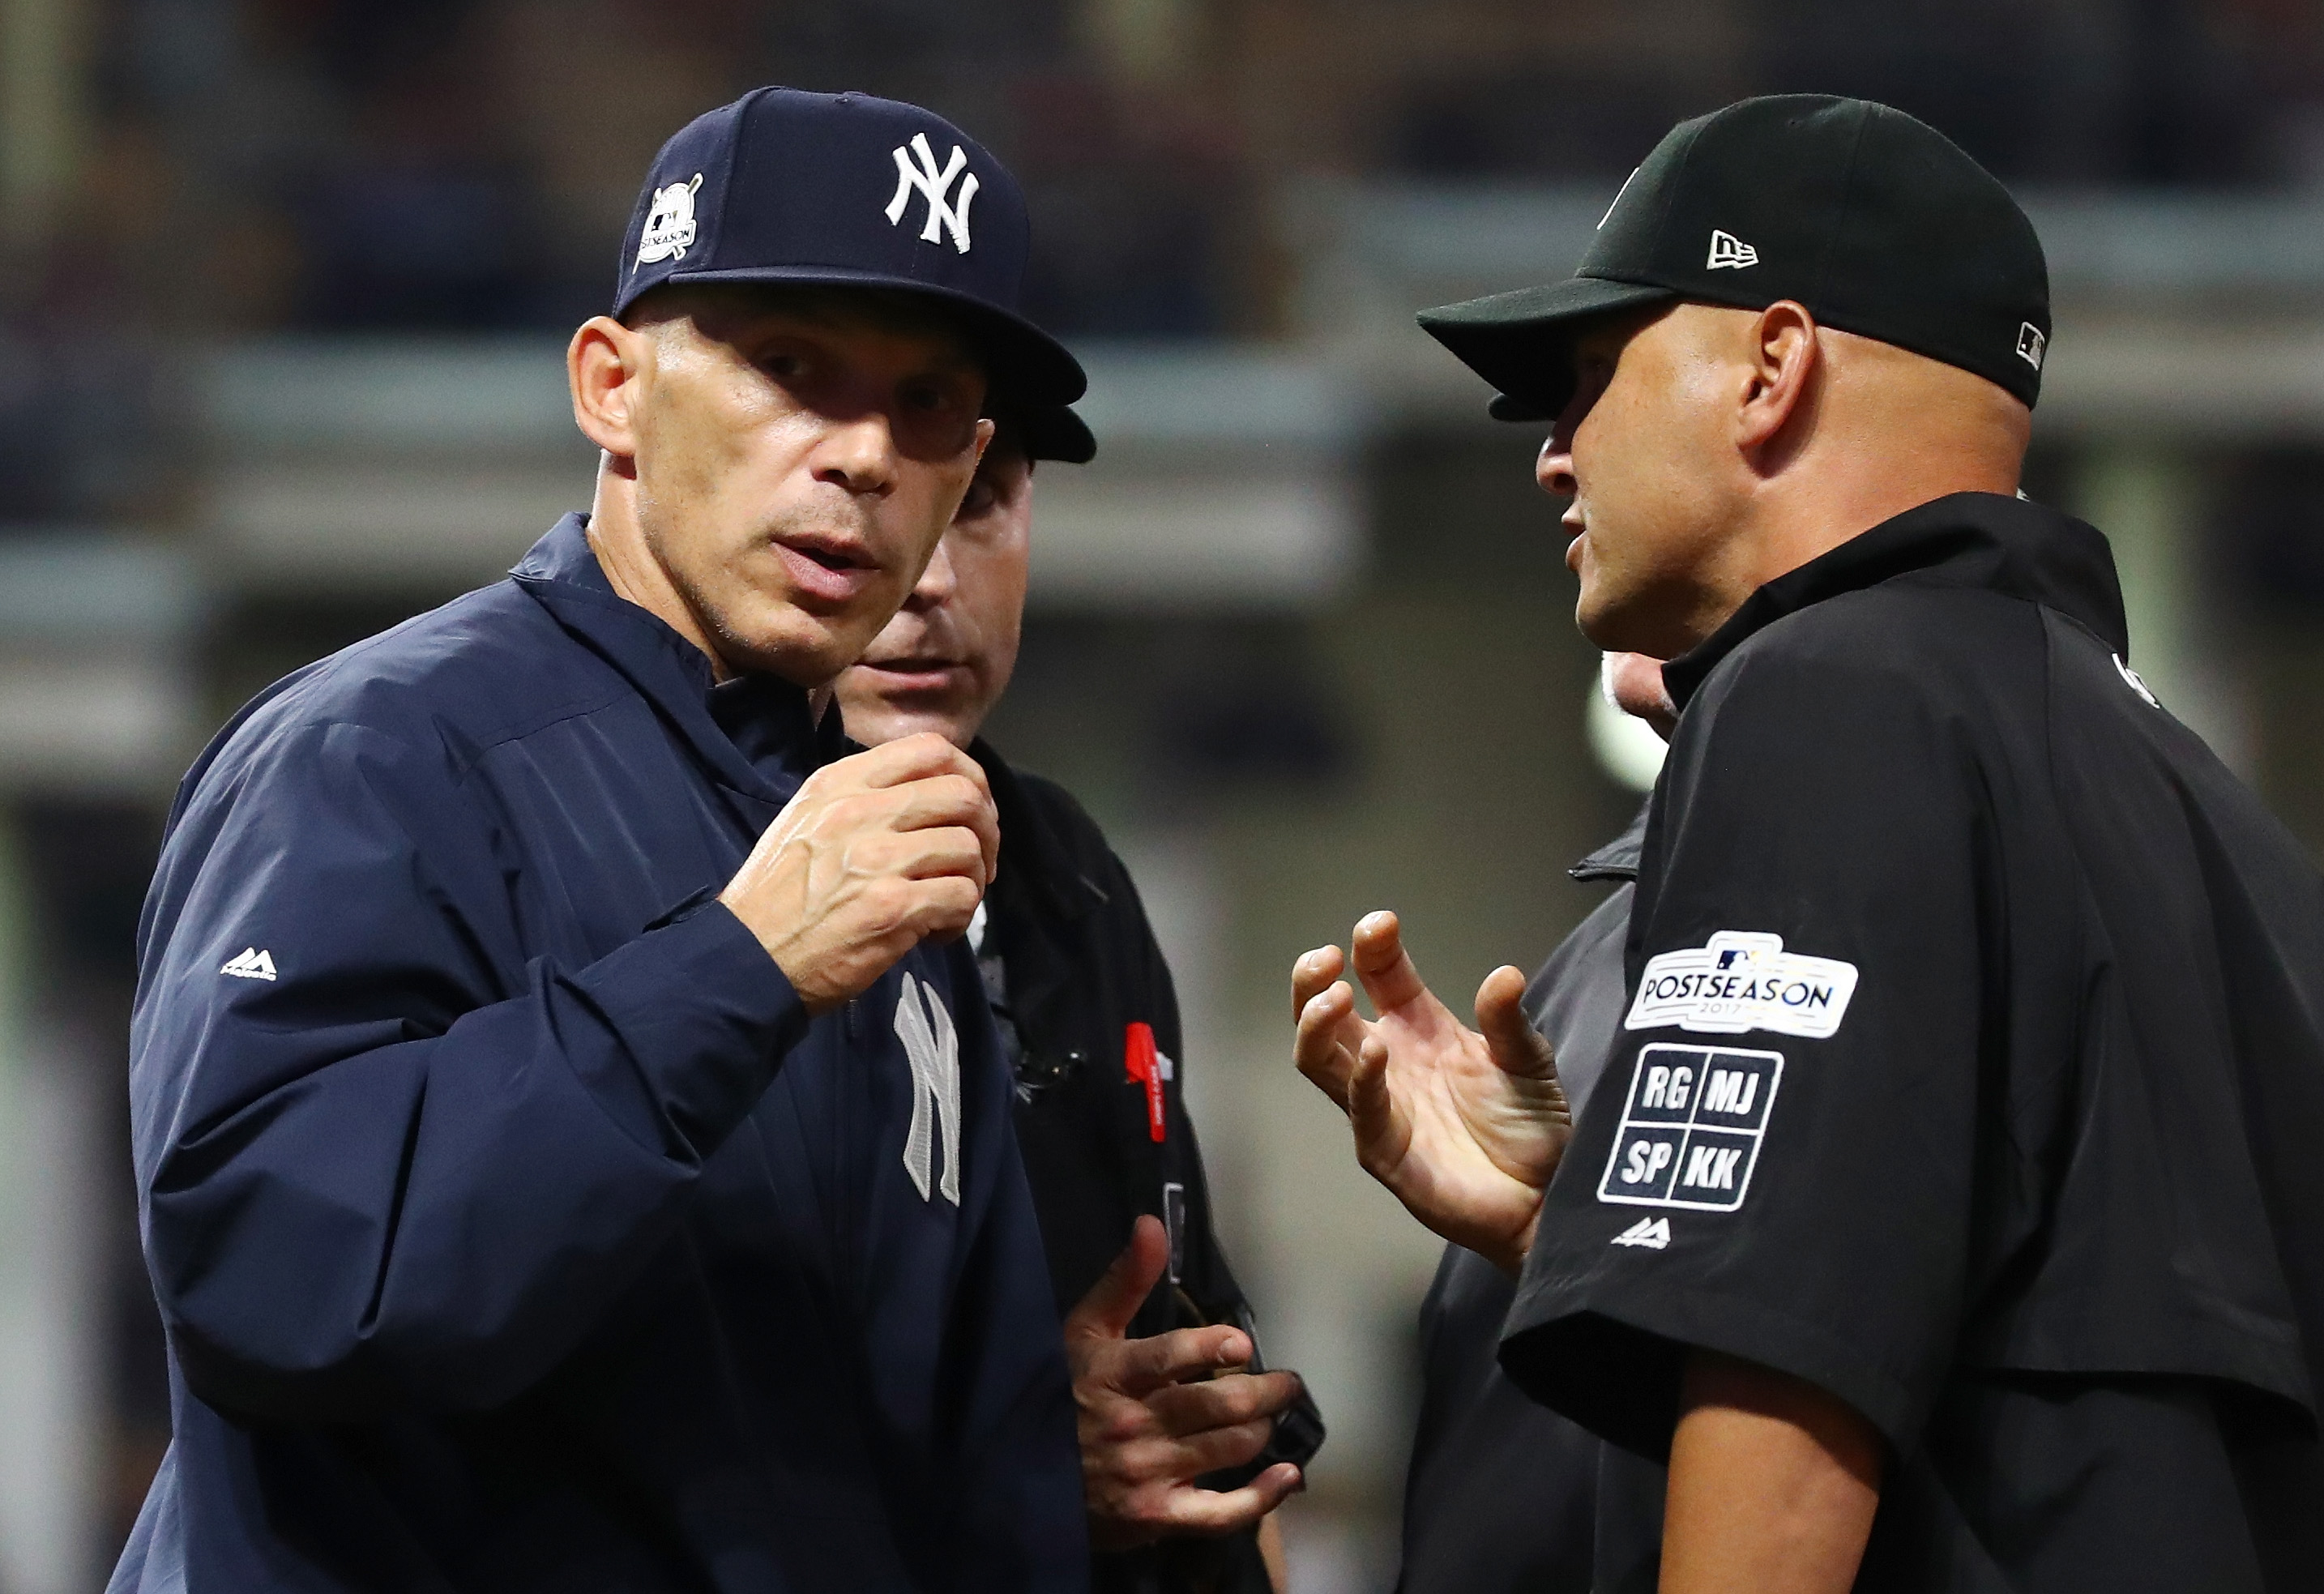 Yankees' Girardi on Game 2 loss: 'I feel frightful  about it'